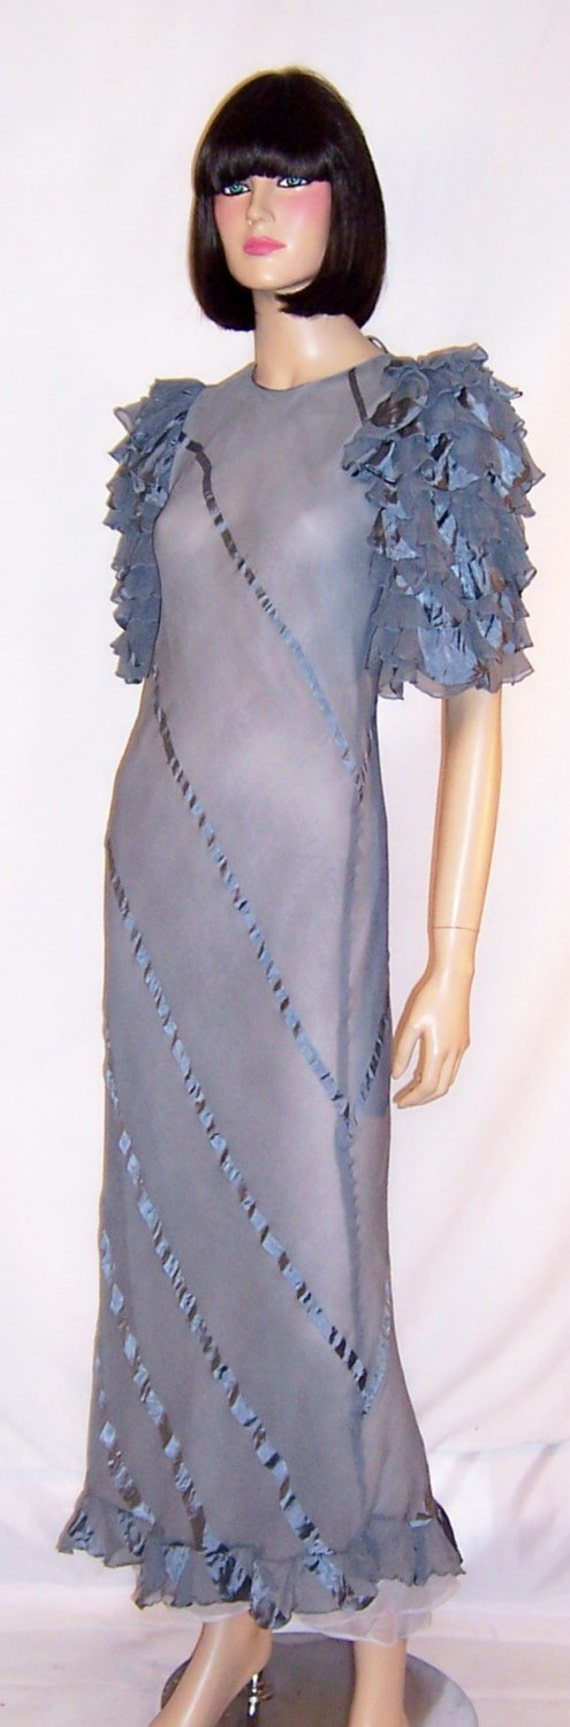 1930's Periwinkle Blue Evening Gown with Ruffled S